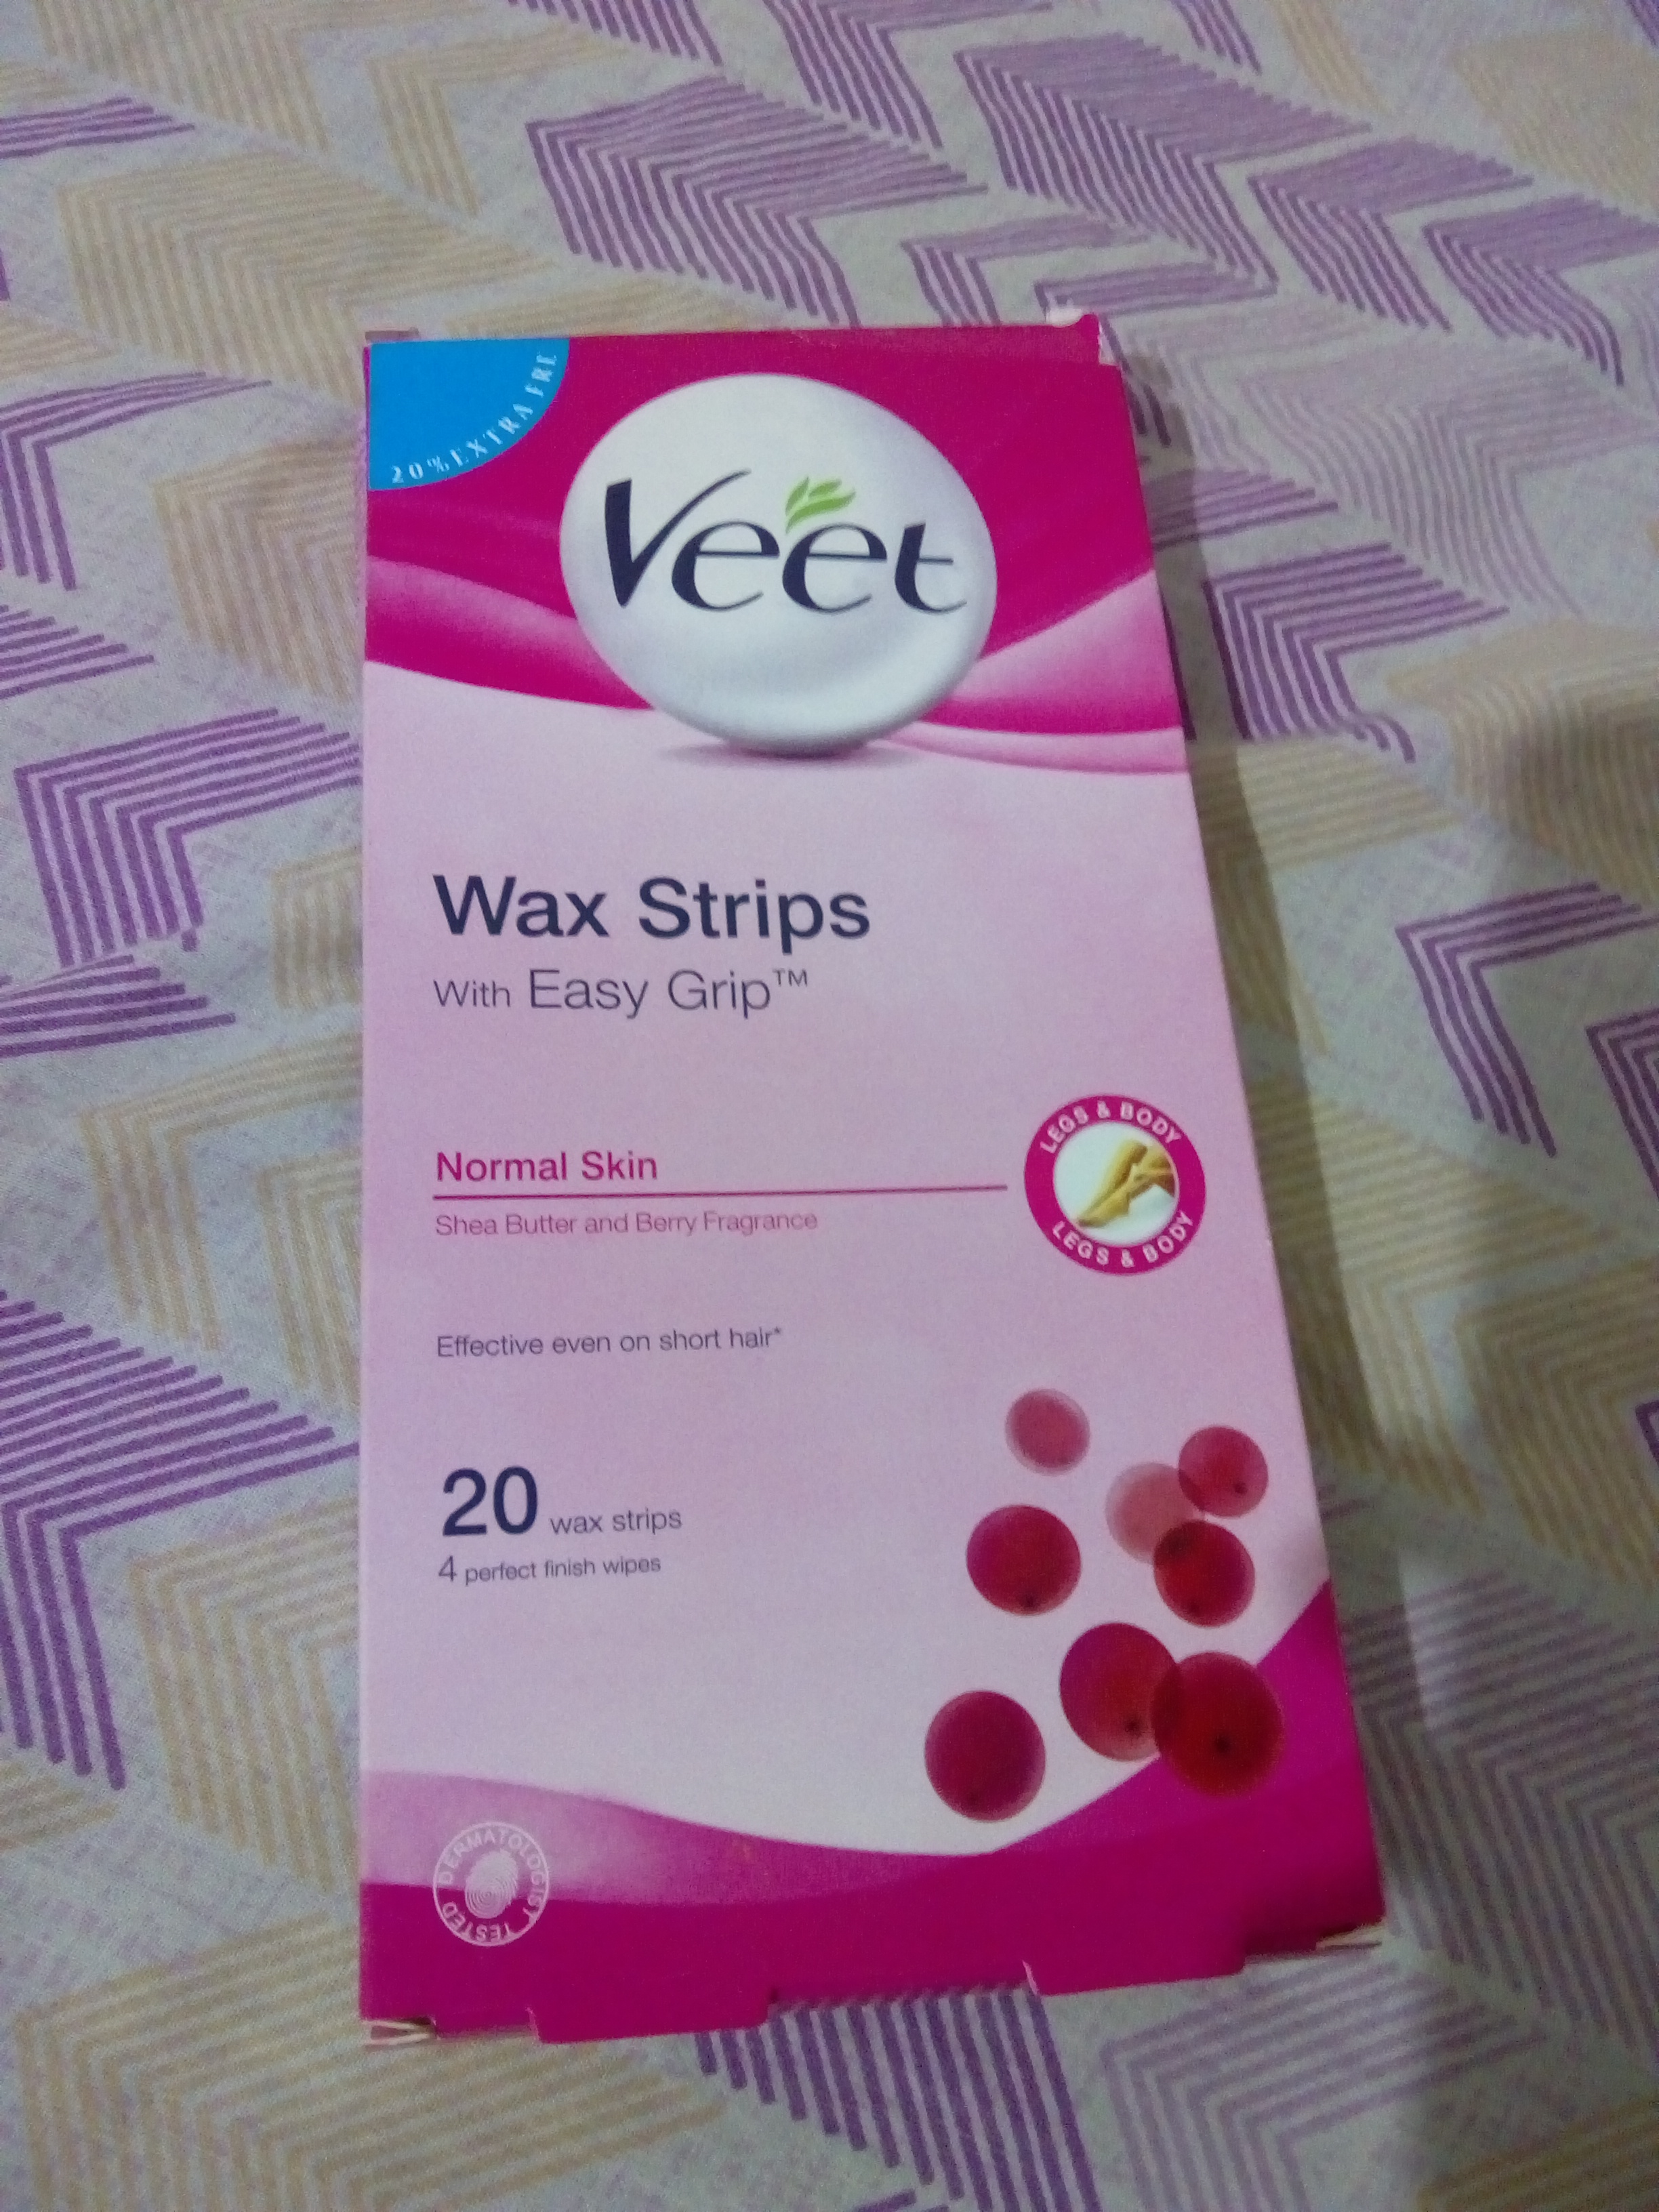 Veet Cold Wax Strips – Instant Waxing Kit-Veet waxing strips-By poorvi_khandelwal